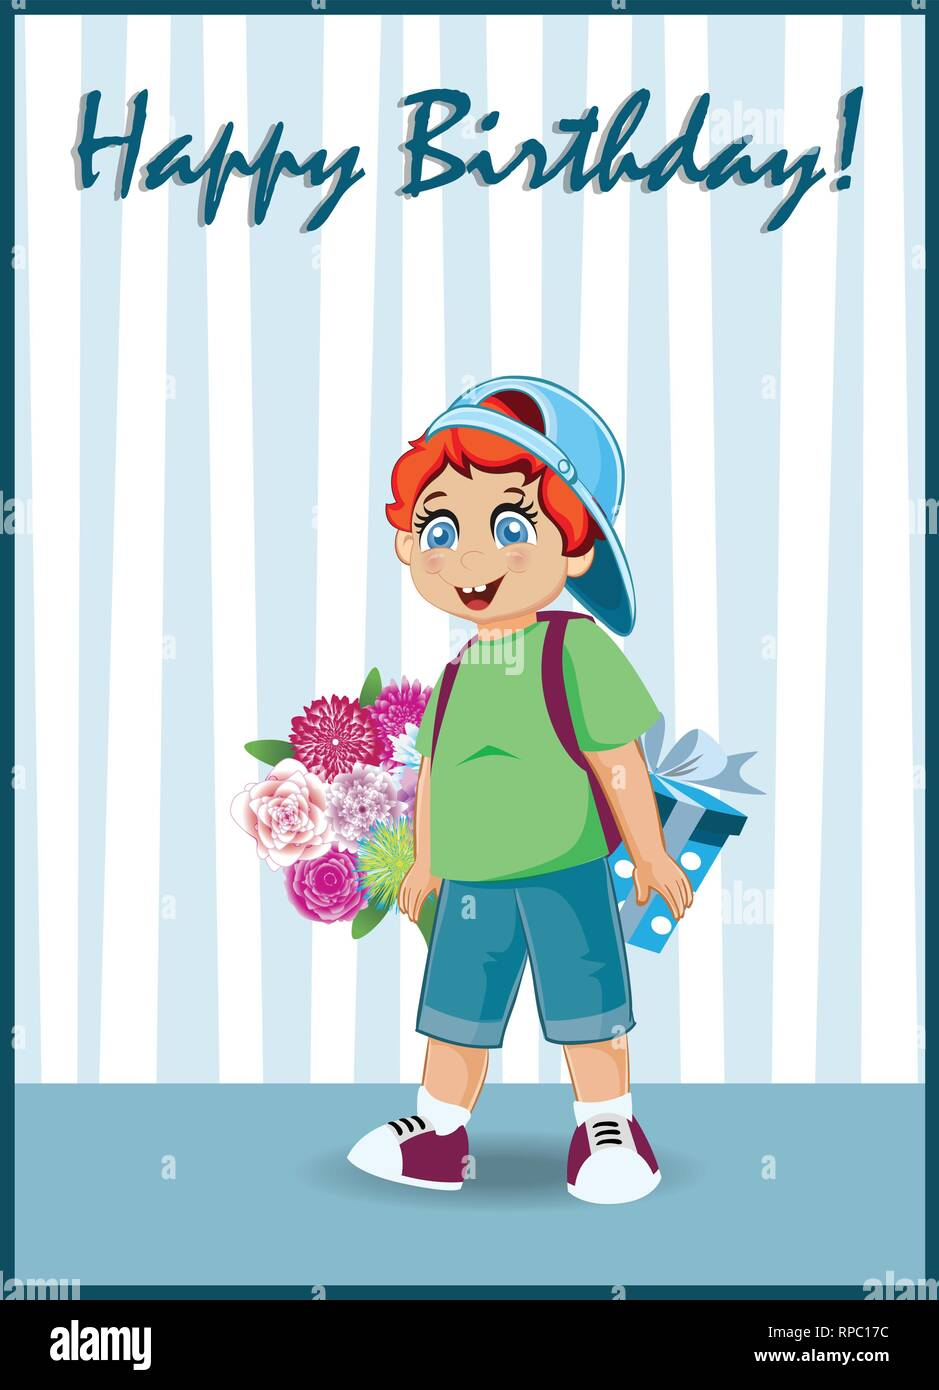 Happy Birthday Greeting Card Of Cute Little Red Head Boy With Bunch Beautiful Flowers And Gift Box Stand In Room With Striped Wallpaper Kawaii Baby C Stock Vector Image Art